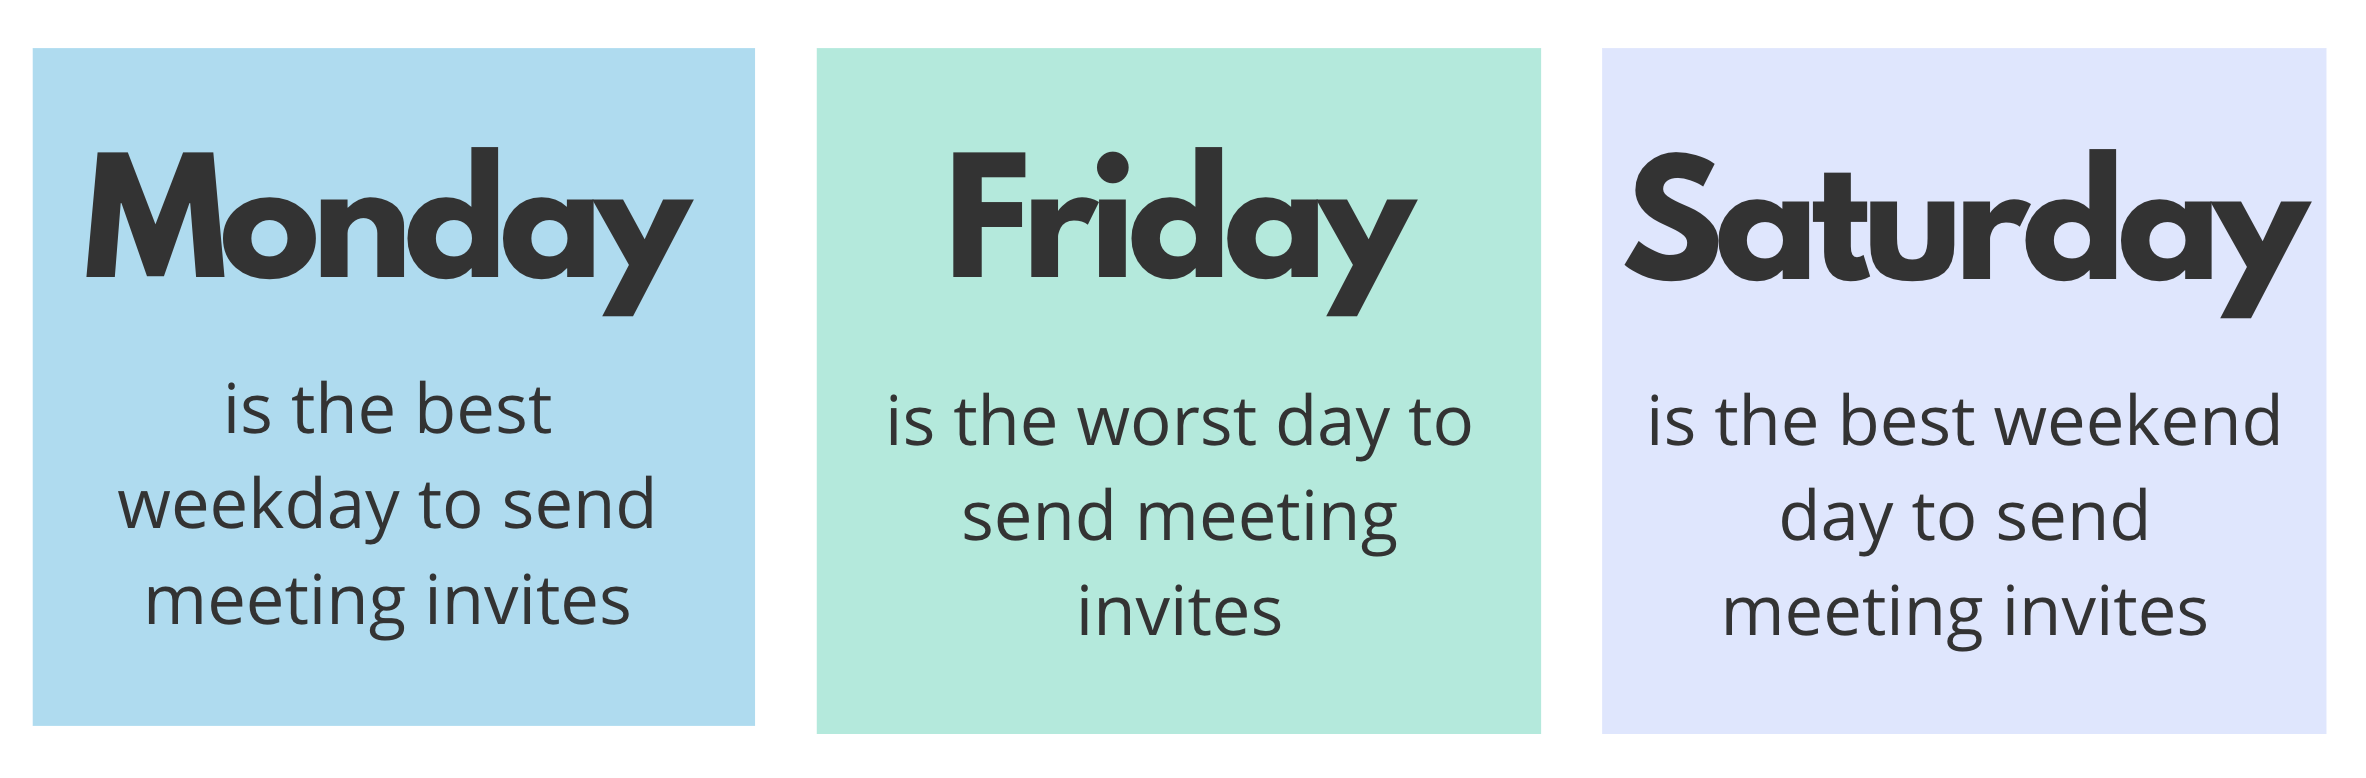 the best days to send meeting invites